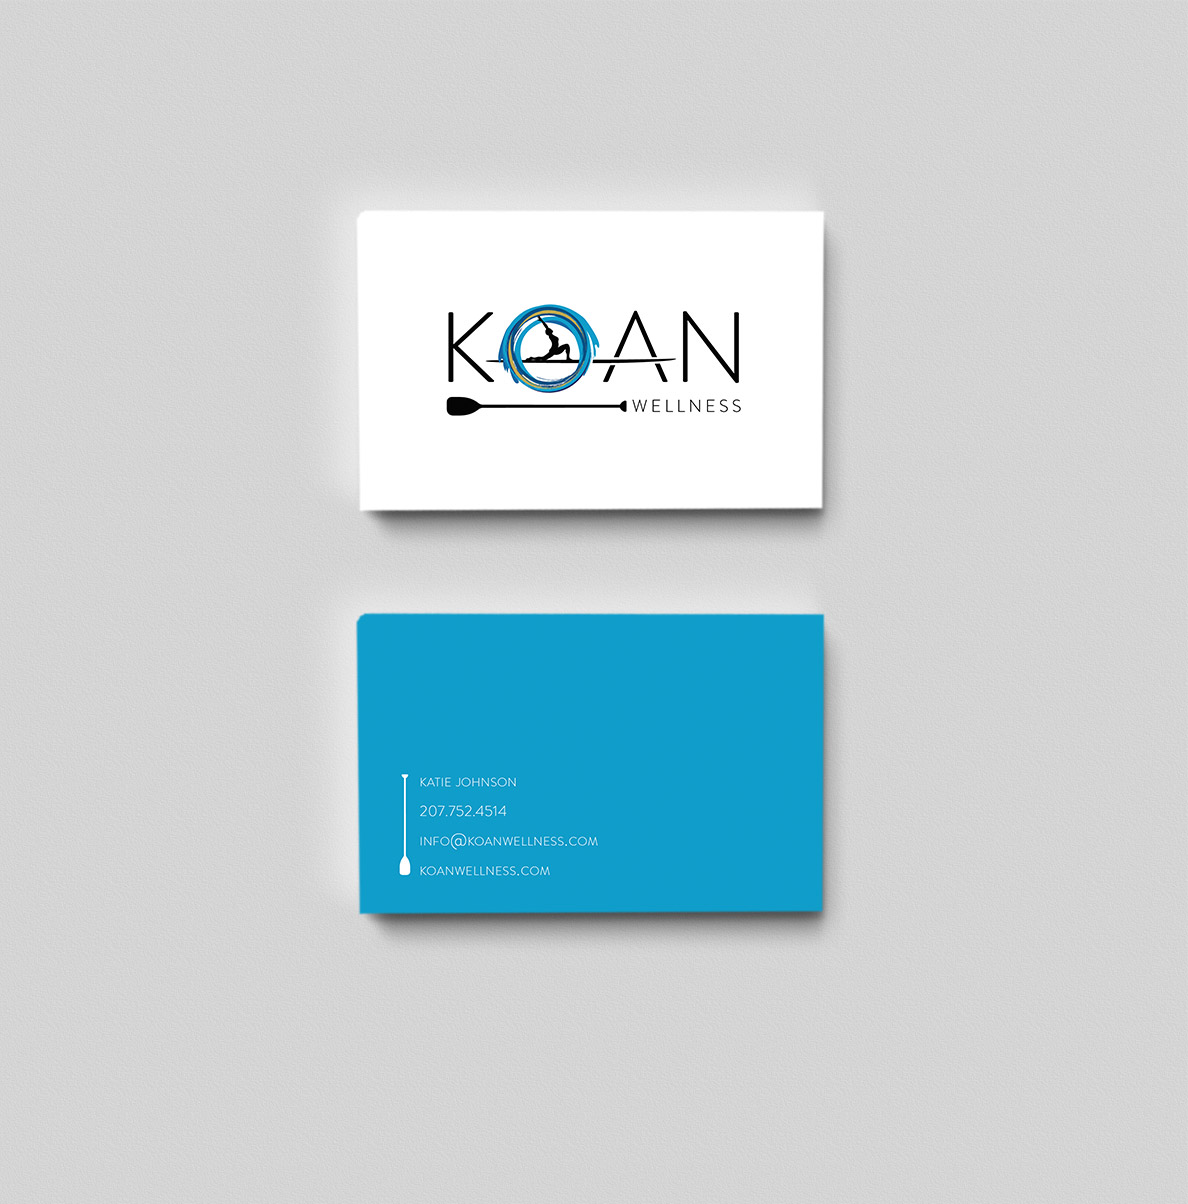 Koan_BusinessCards.jpg